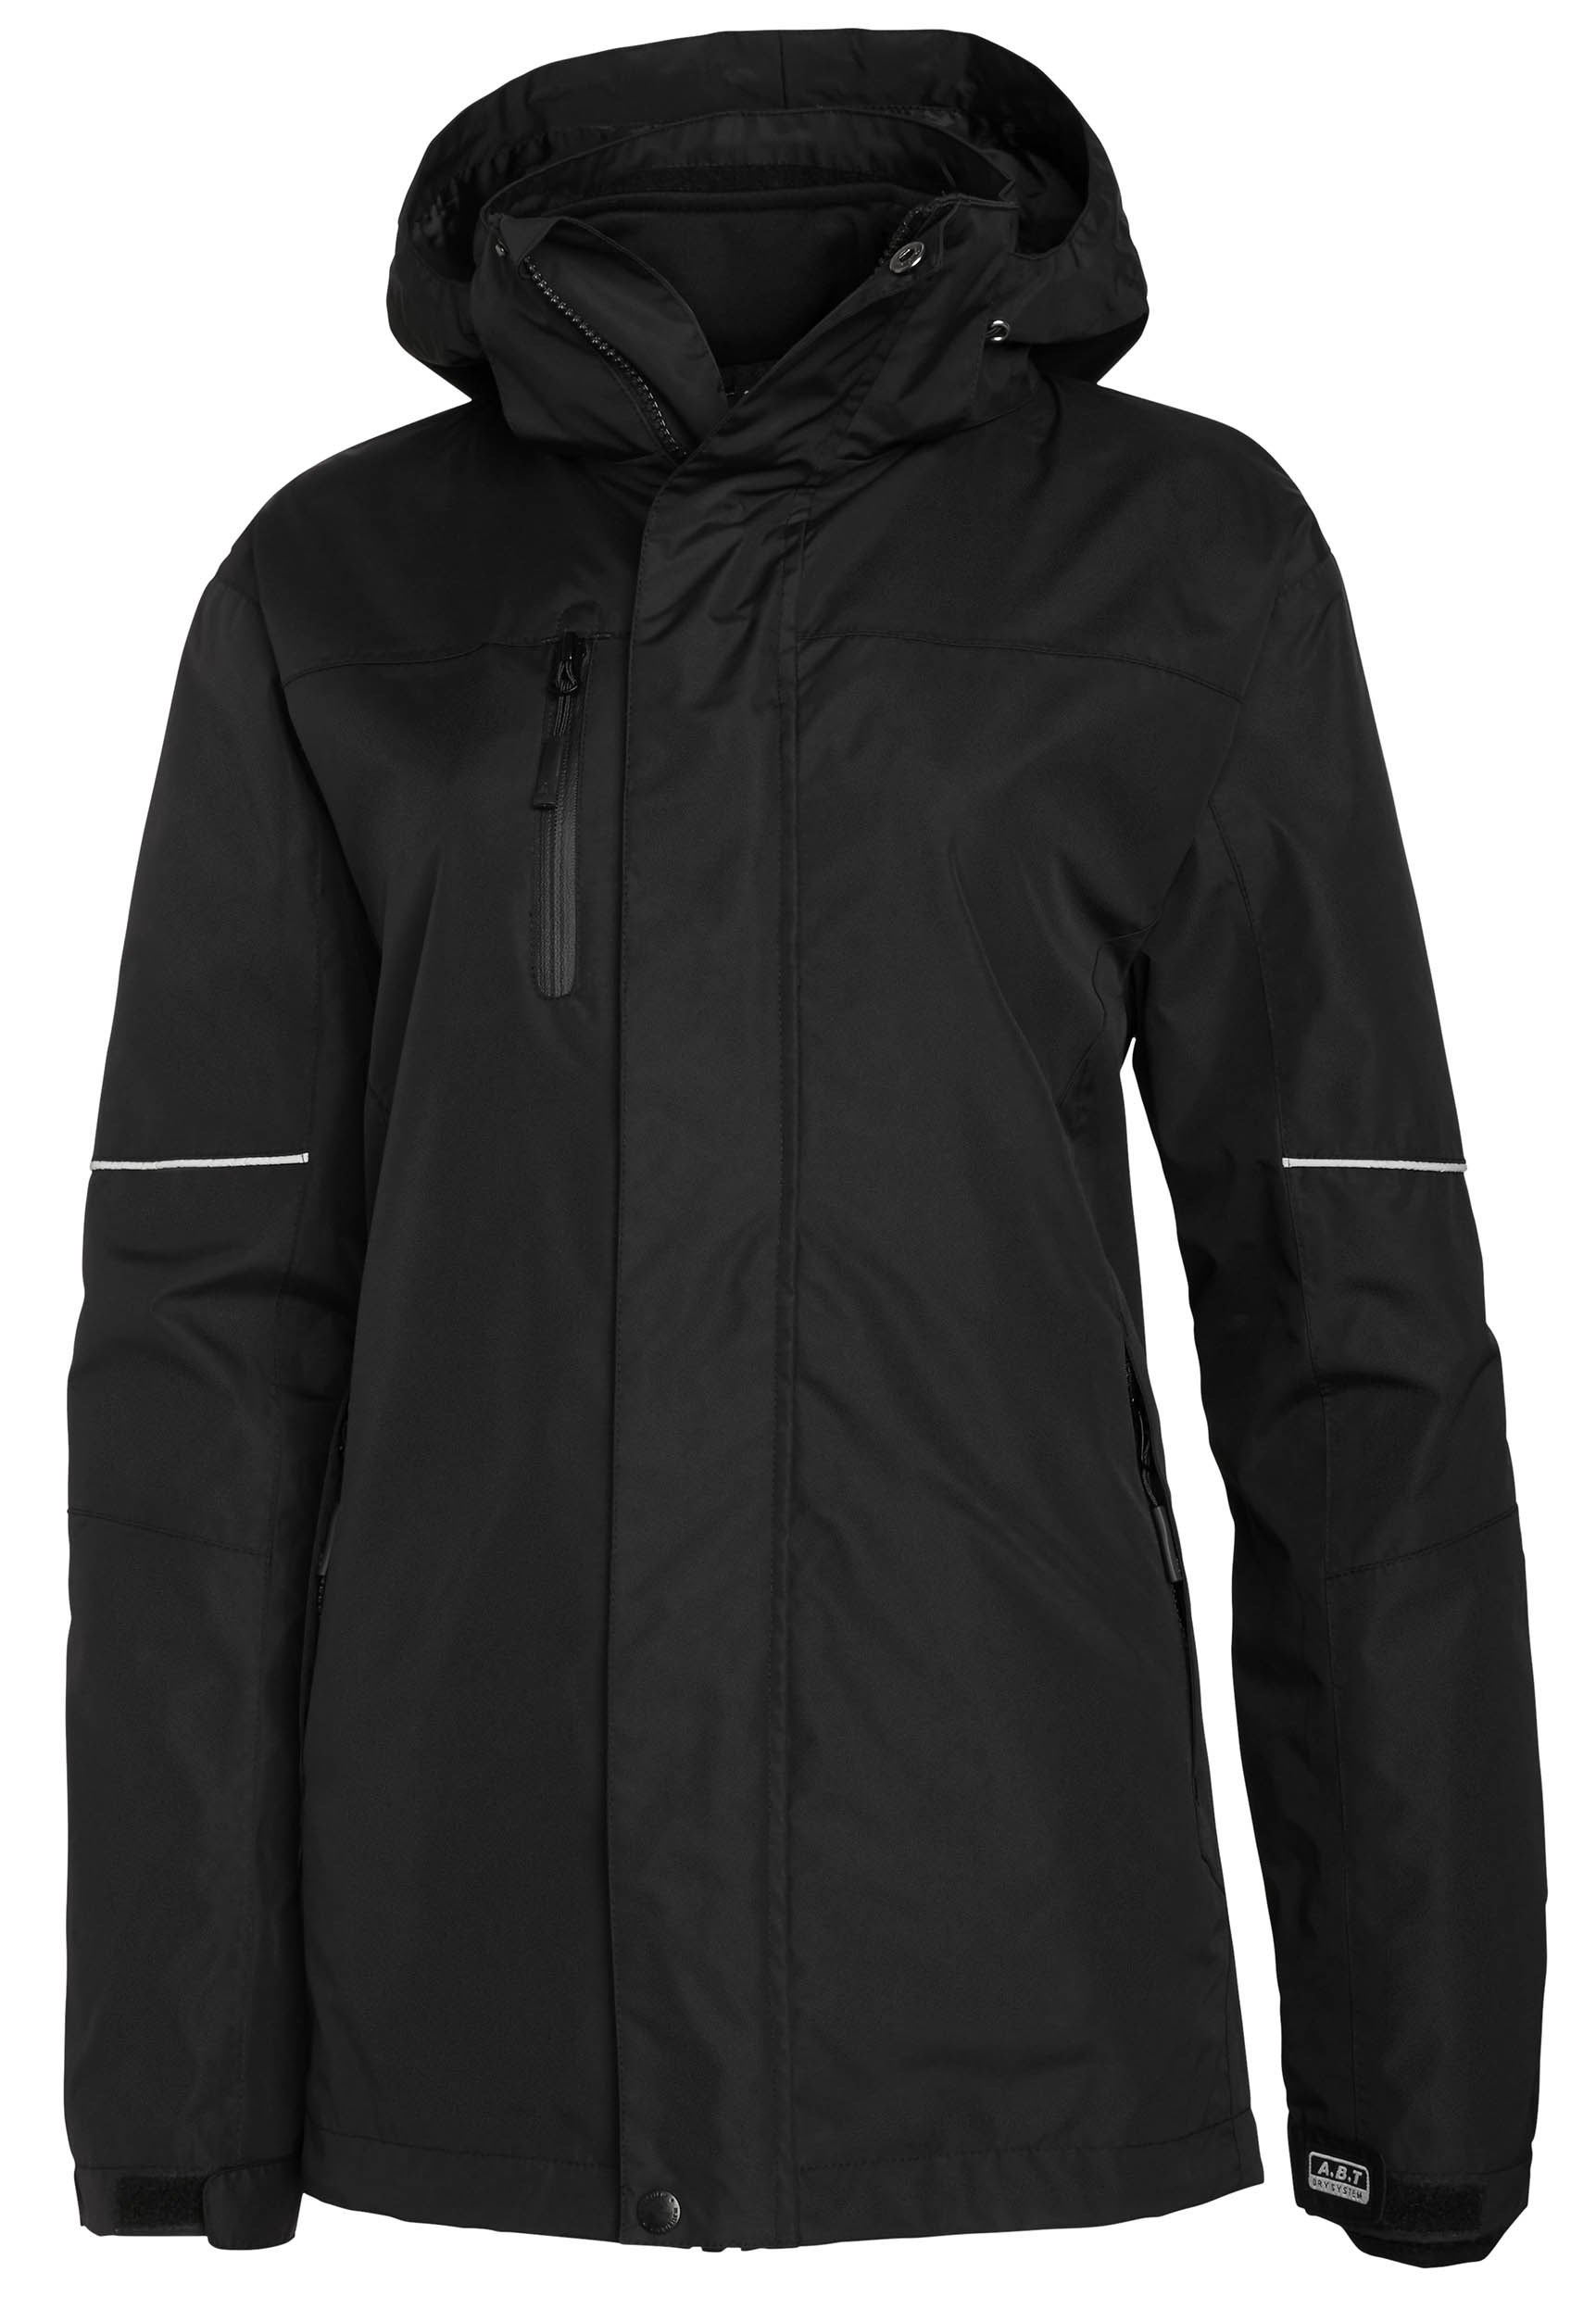 Matterhorn MH-952D 3-in-1 Jacket Ladies Black 34